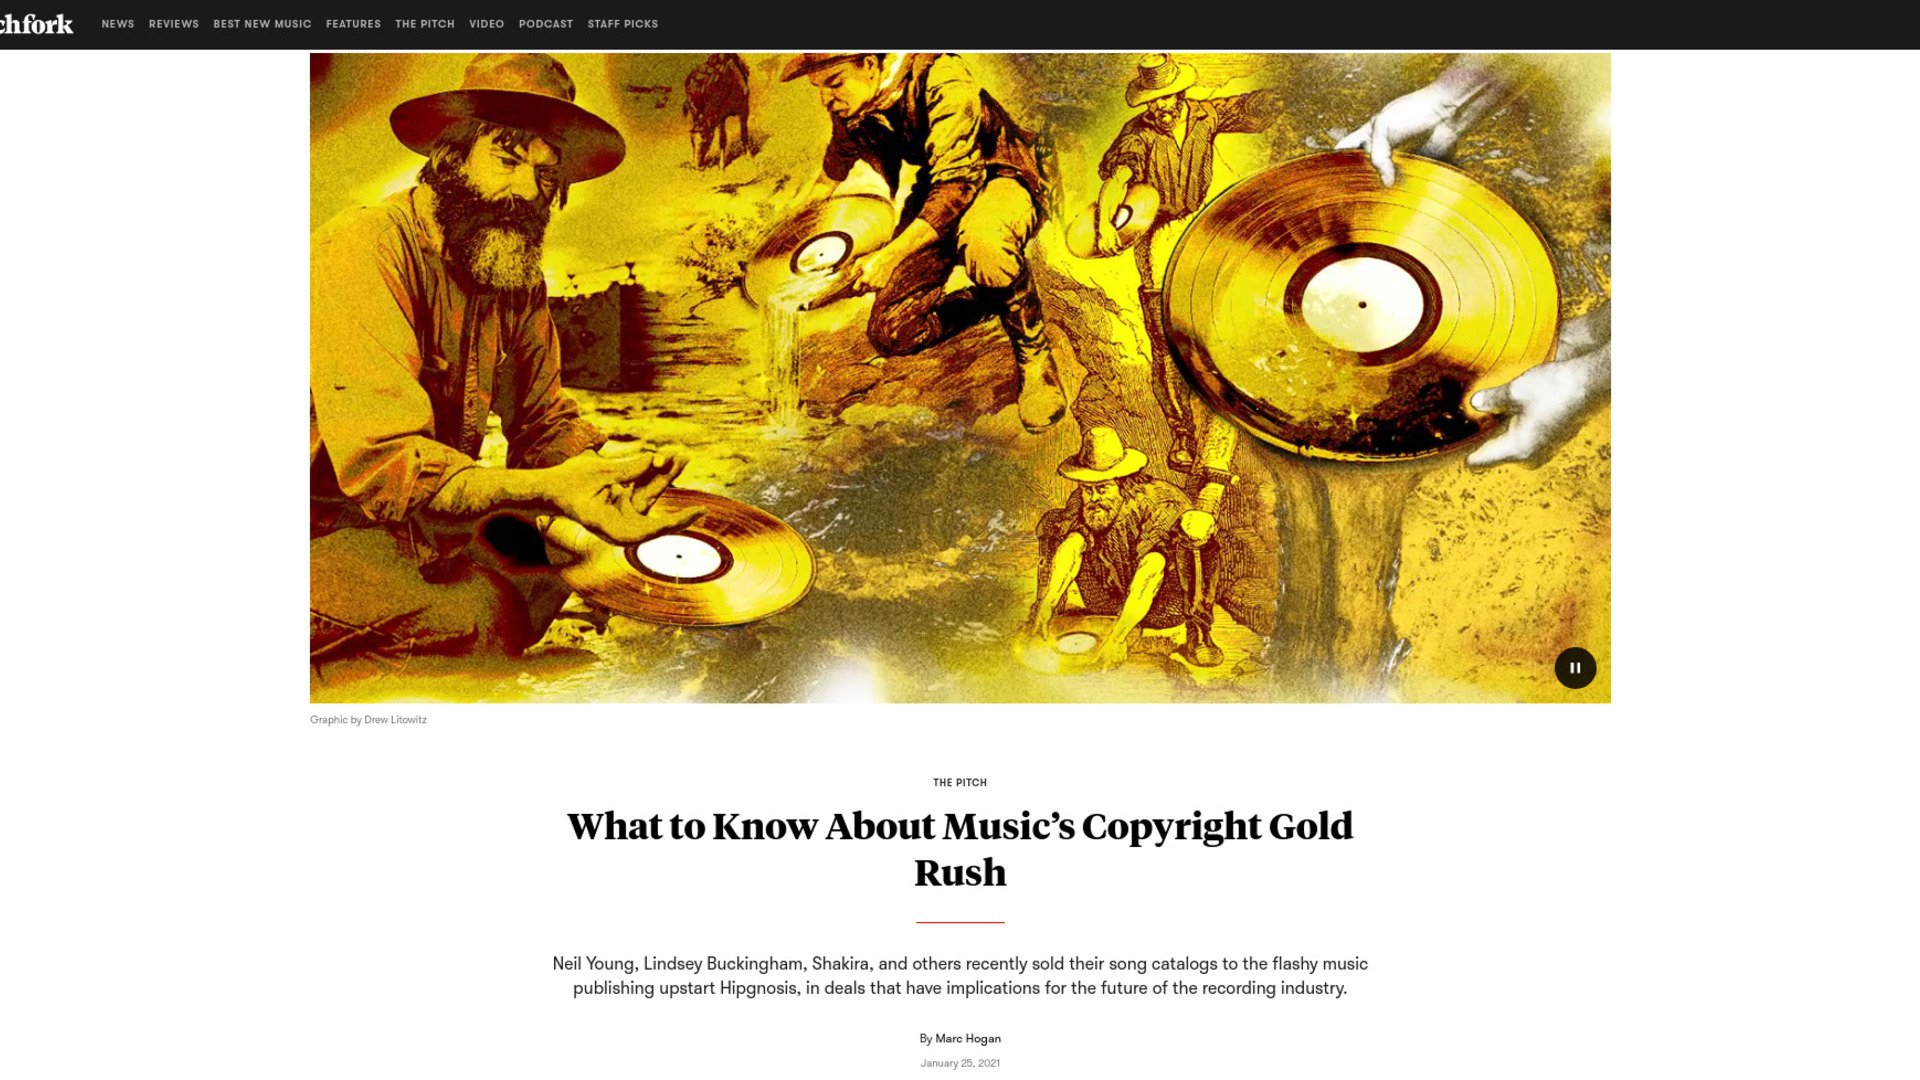 Fairness Rocks News What to Know About Music's Copyright Gold Rush